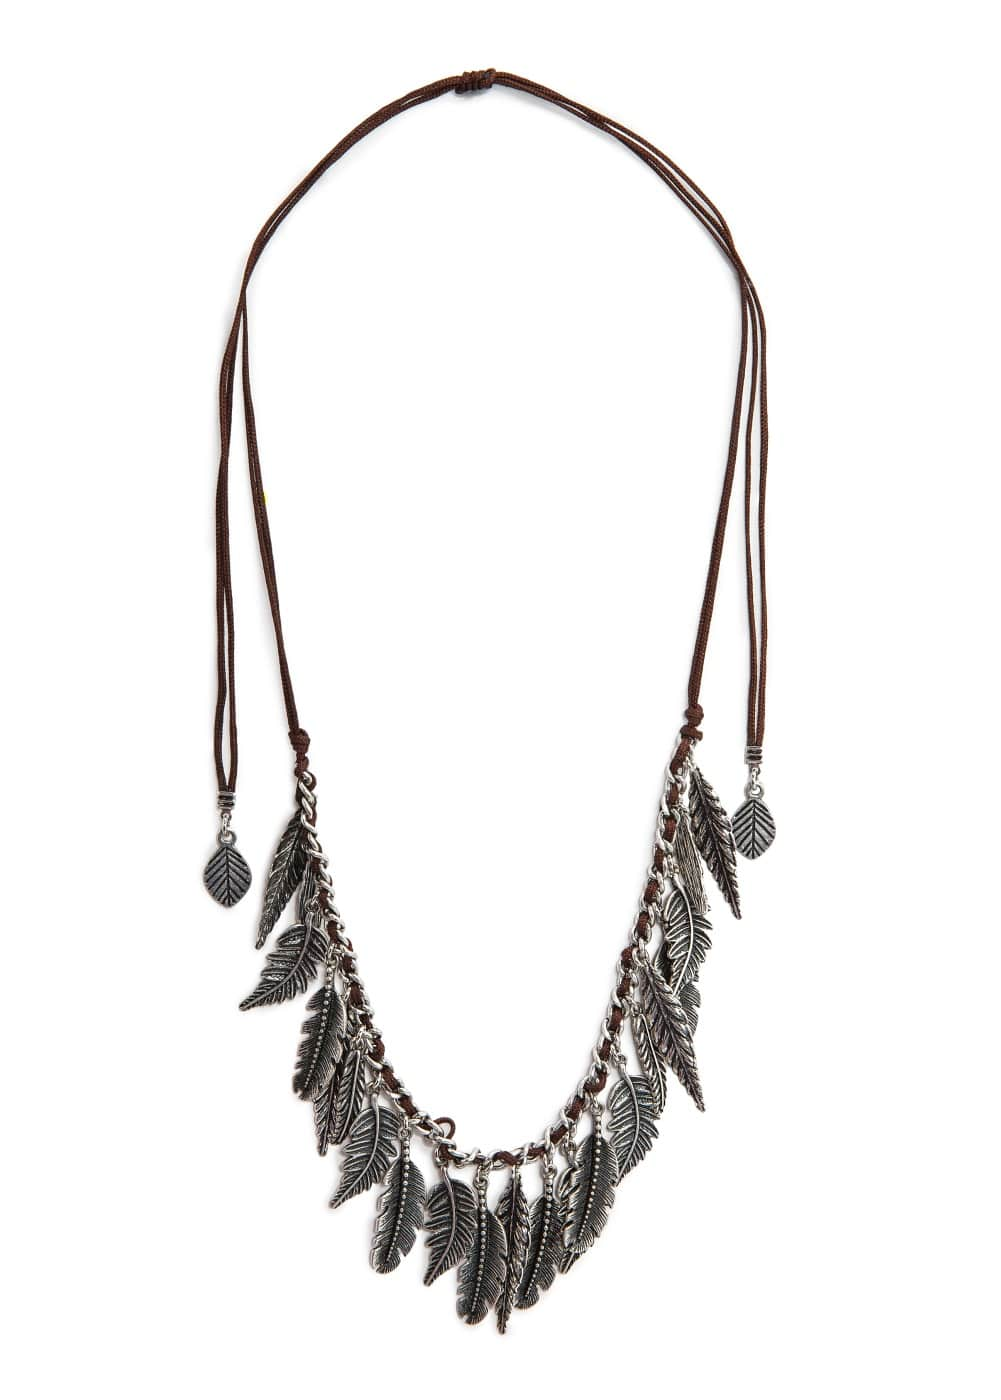 Feather cord necklace